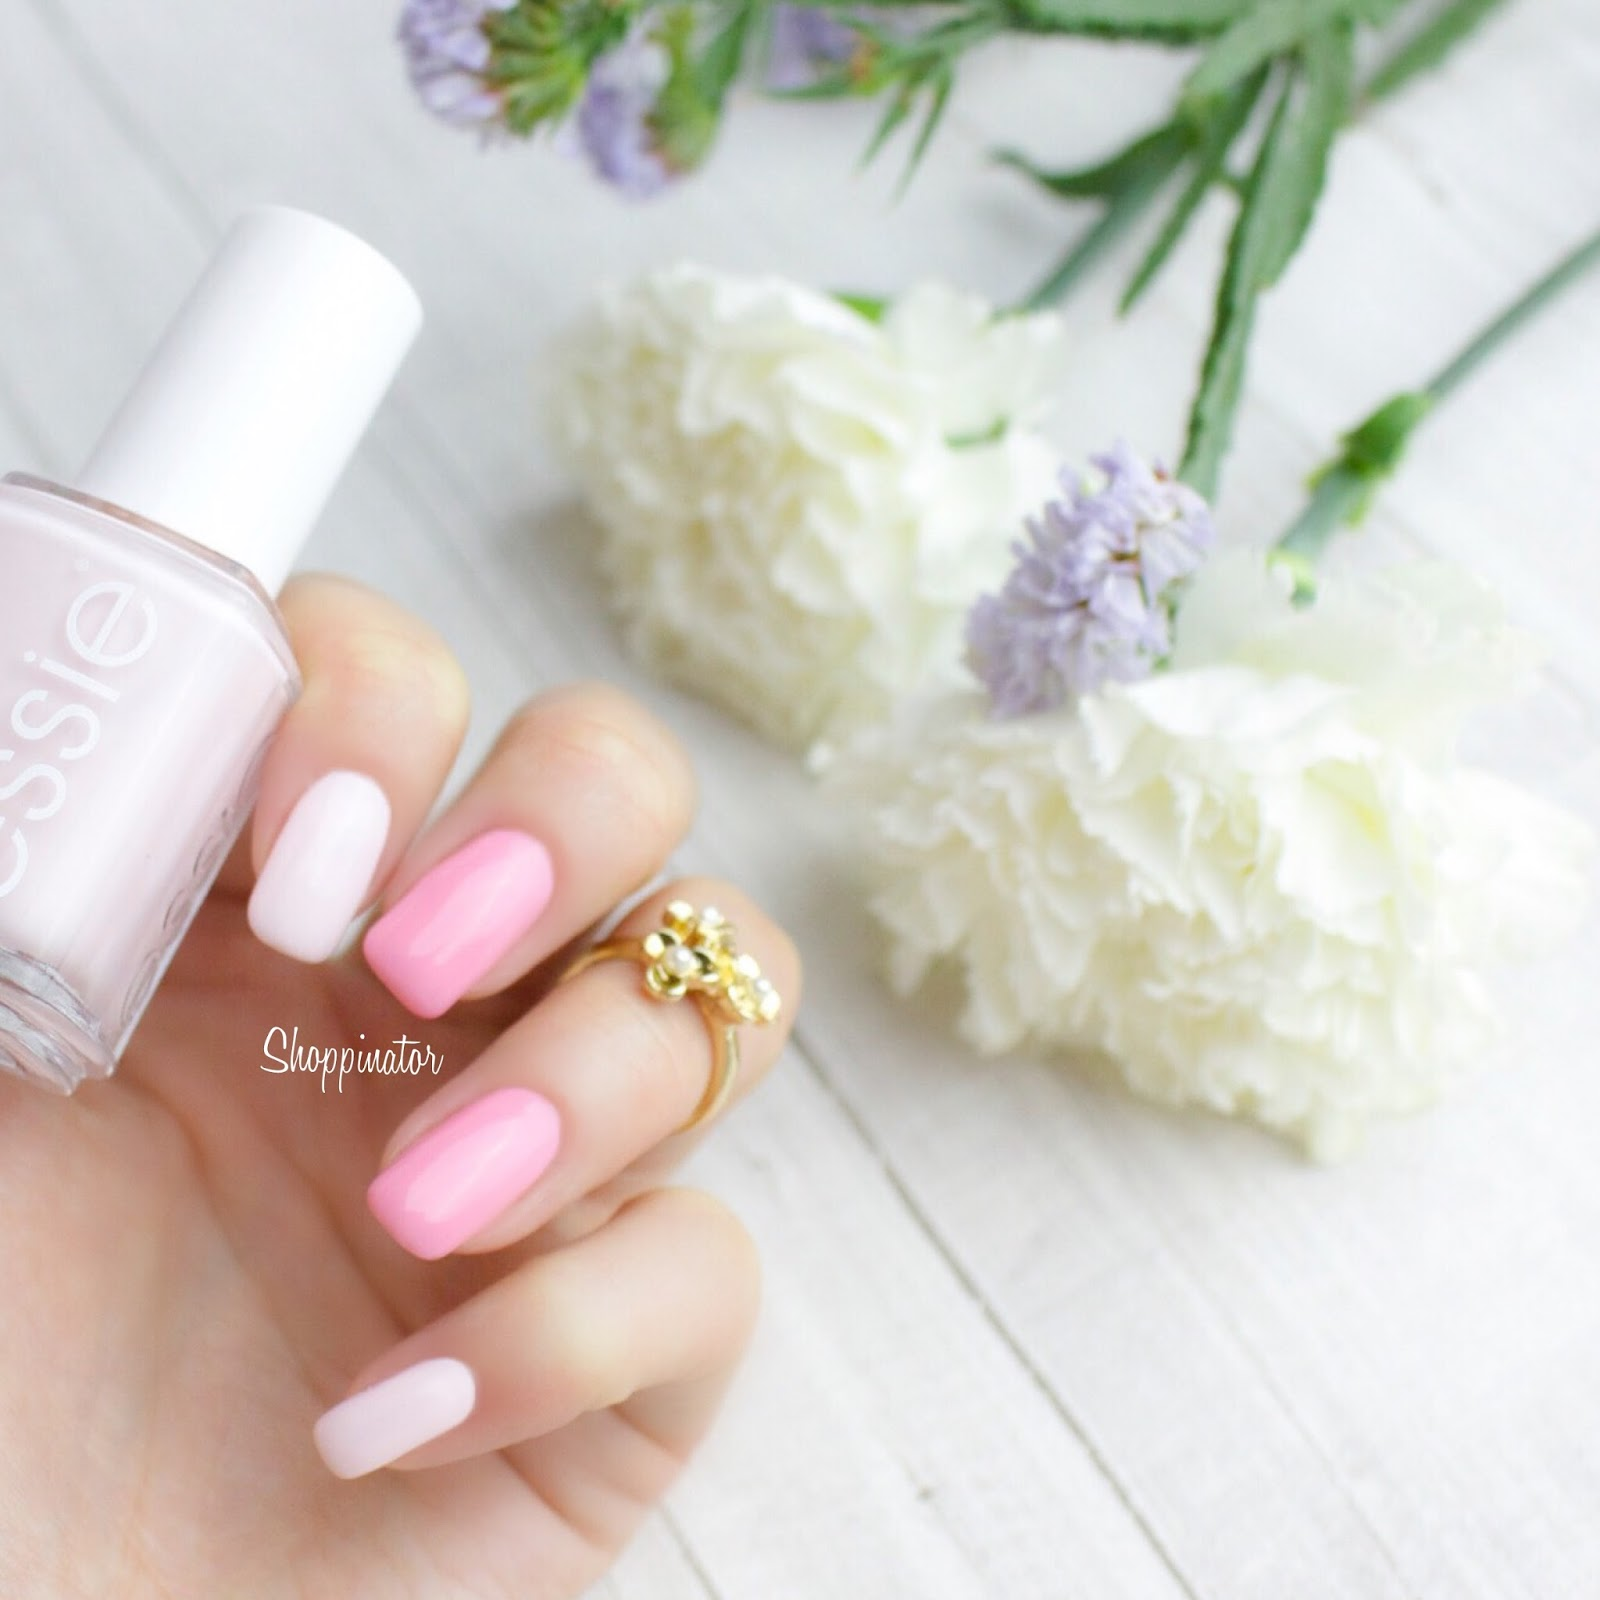 Essie-Need-a-vacation-fiji-find-me-an-oasis-spin-the-bottle-shoppinator-nagellack-essieliebe-pastell-limitiert-LE-Pastells-rosa-nude-hellblau-pink-das-perfekte-lackiert-summer-sommer-2015-fijiliebe